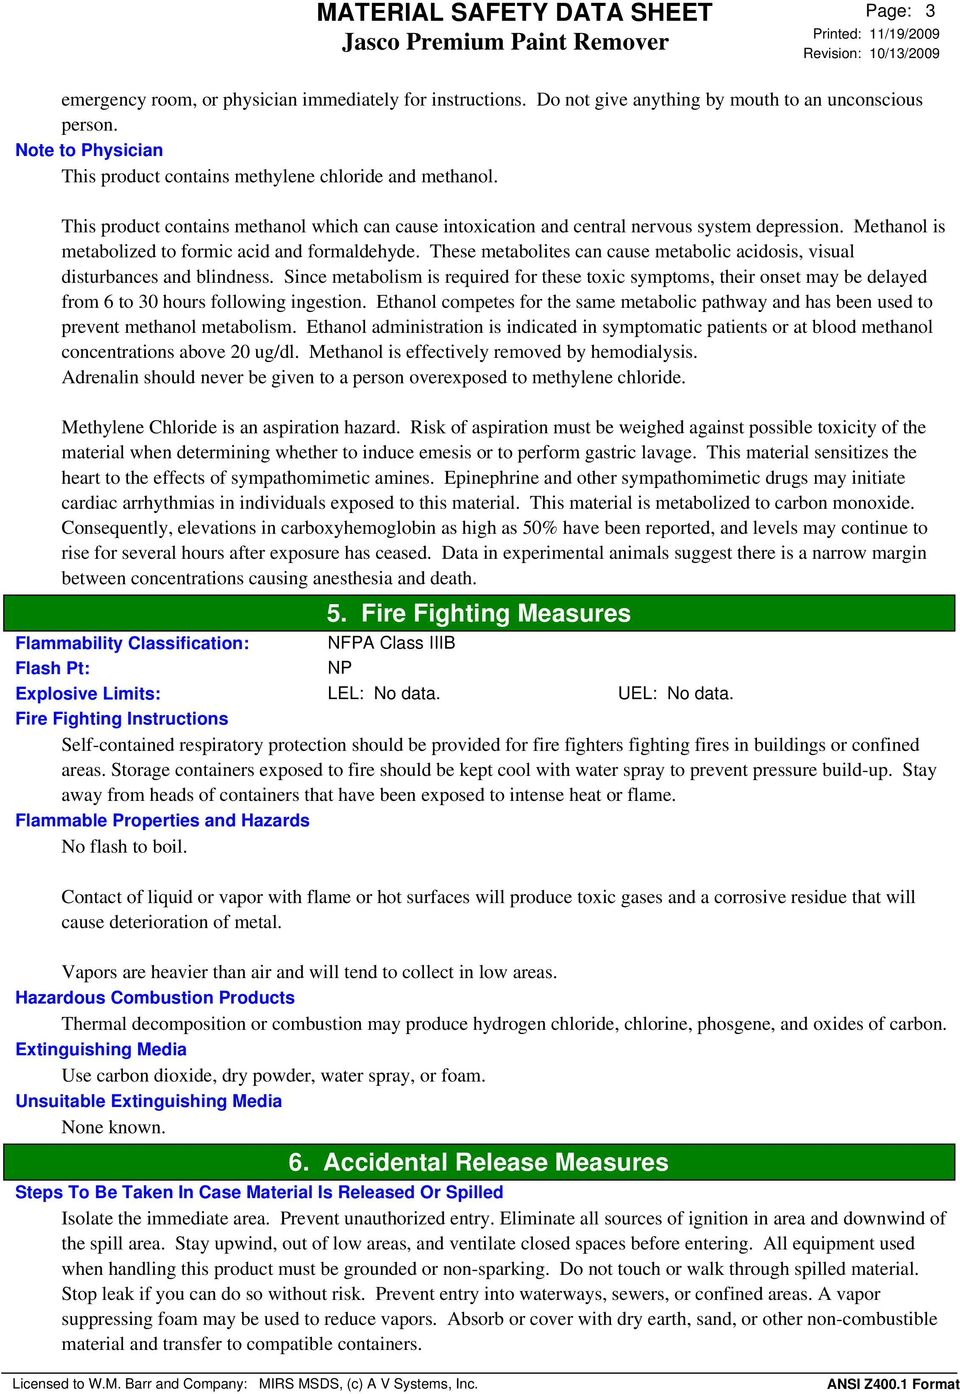 MATERIAL SAFETY DATA SHEET Jasco Premium Paint Remover  1